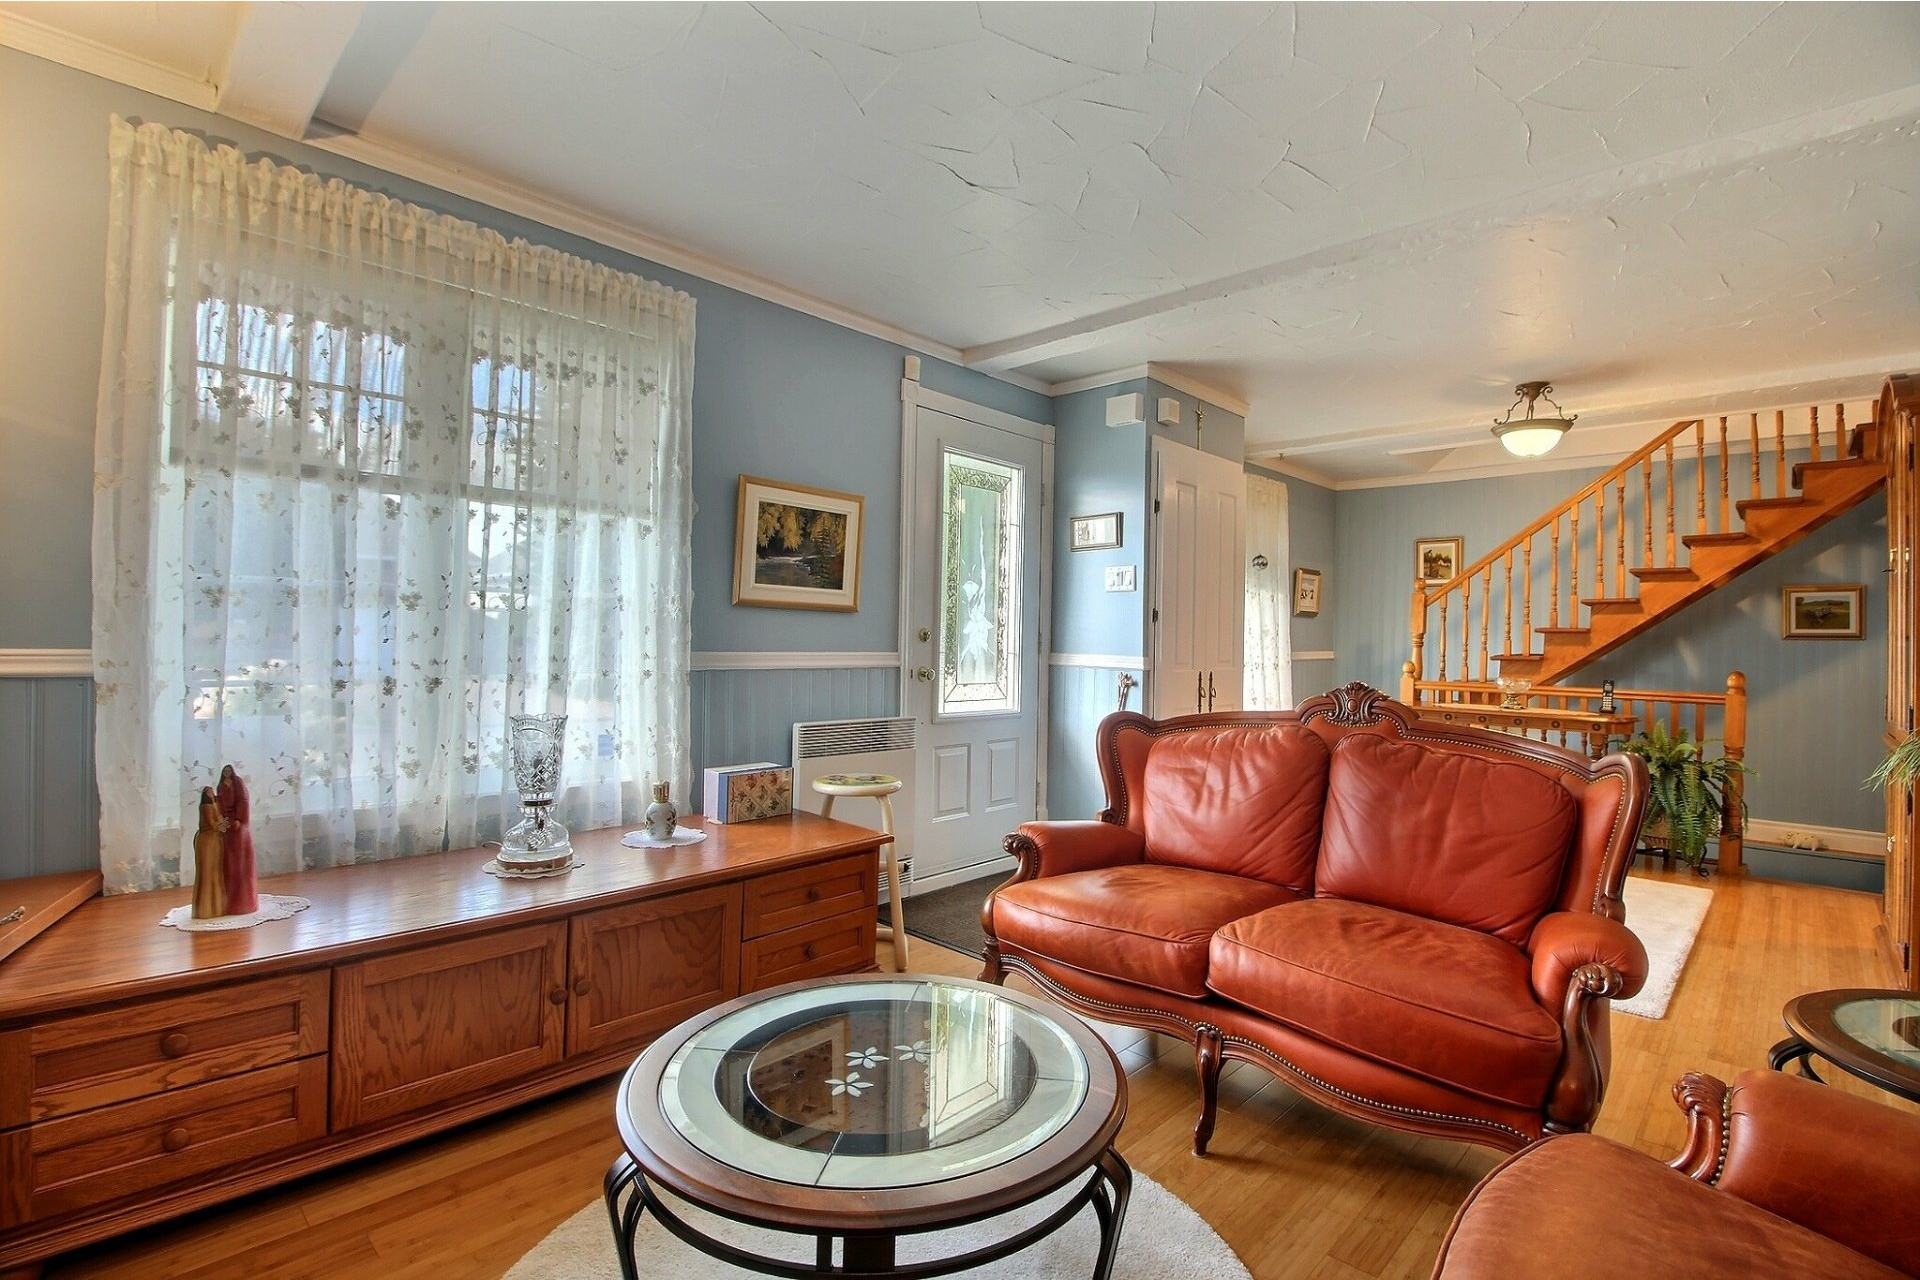 image 4 - House For sale Saint-Sulpice - 10 rooms